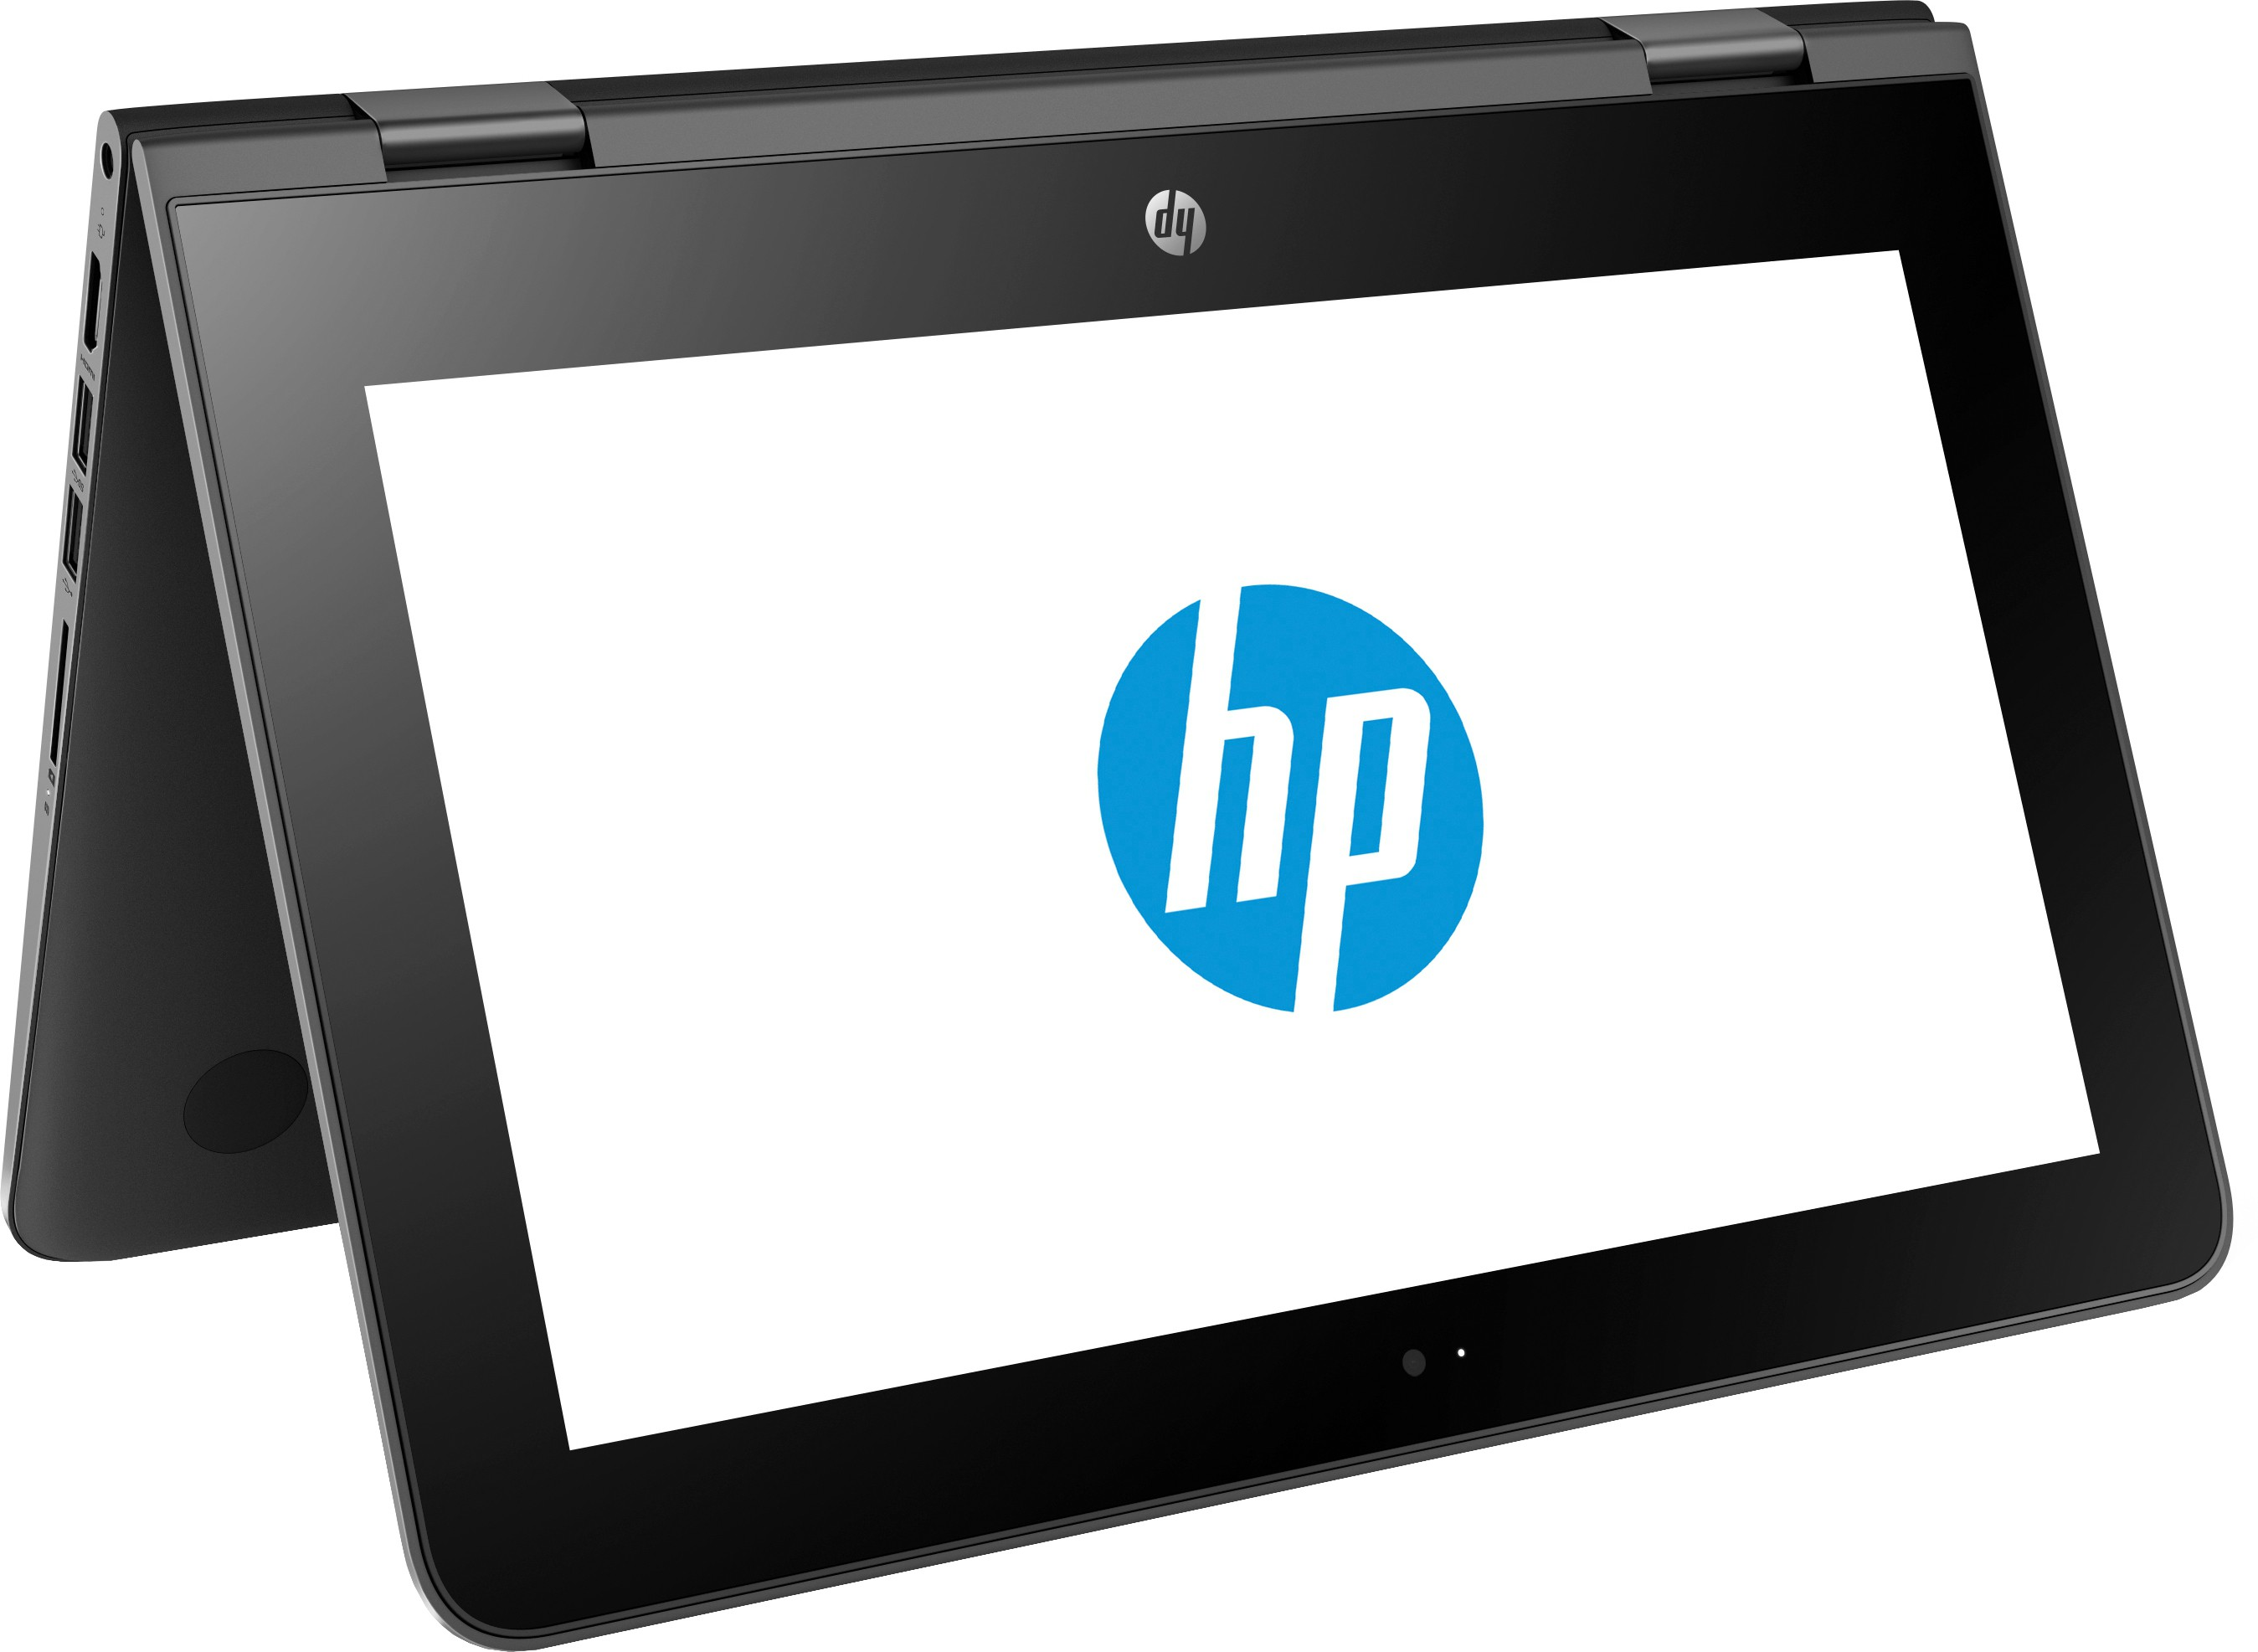 Deals - Jodhpur - 2 in 1 Laptops <br> From HP<br> Category - computers<br> Business - Flipkart.com